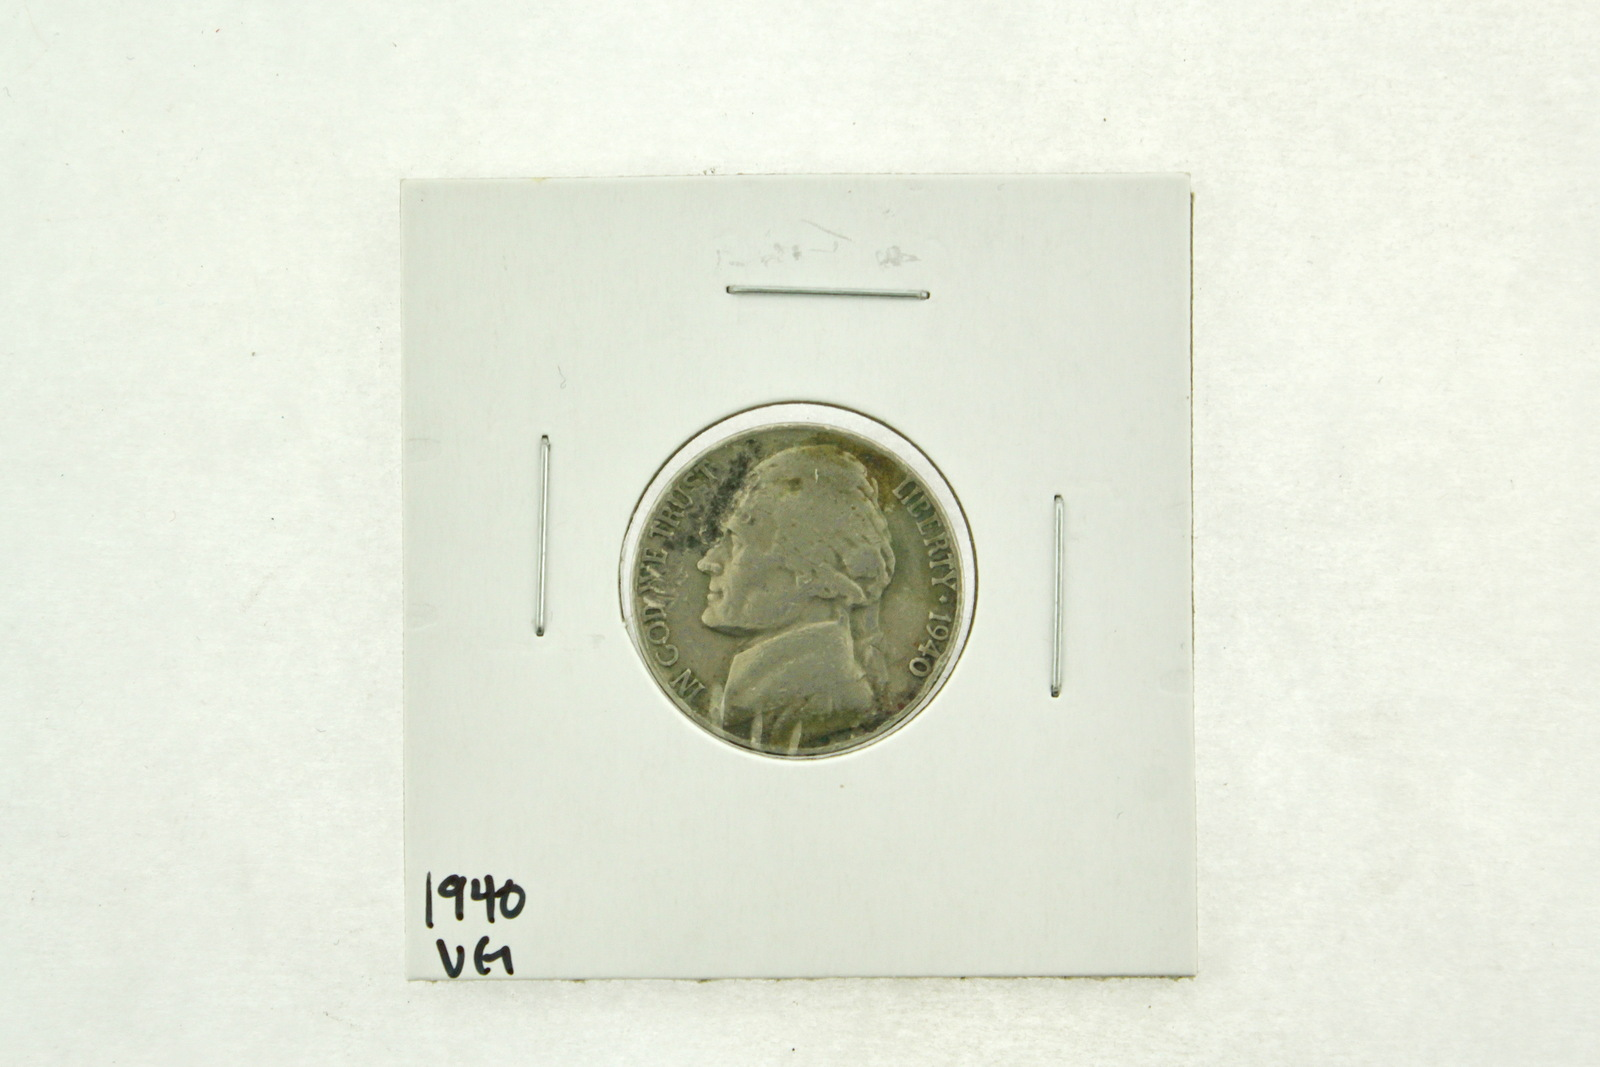 Primary image for 1940 Jefferson Nickel (VG) Very Good N2-2722-2